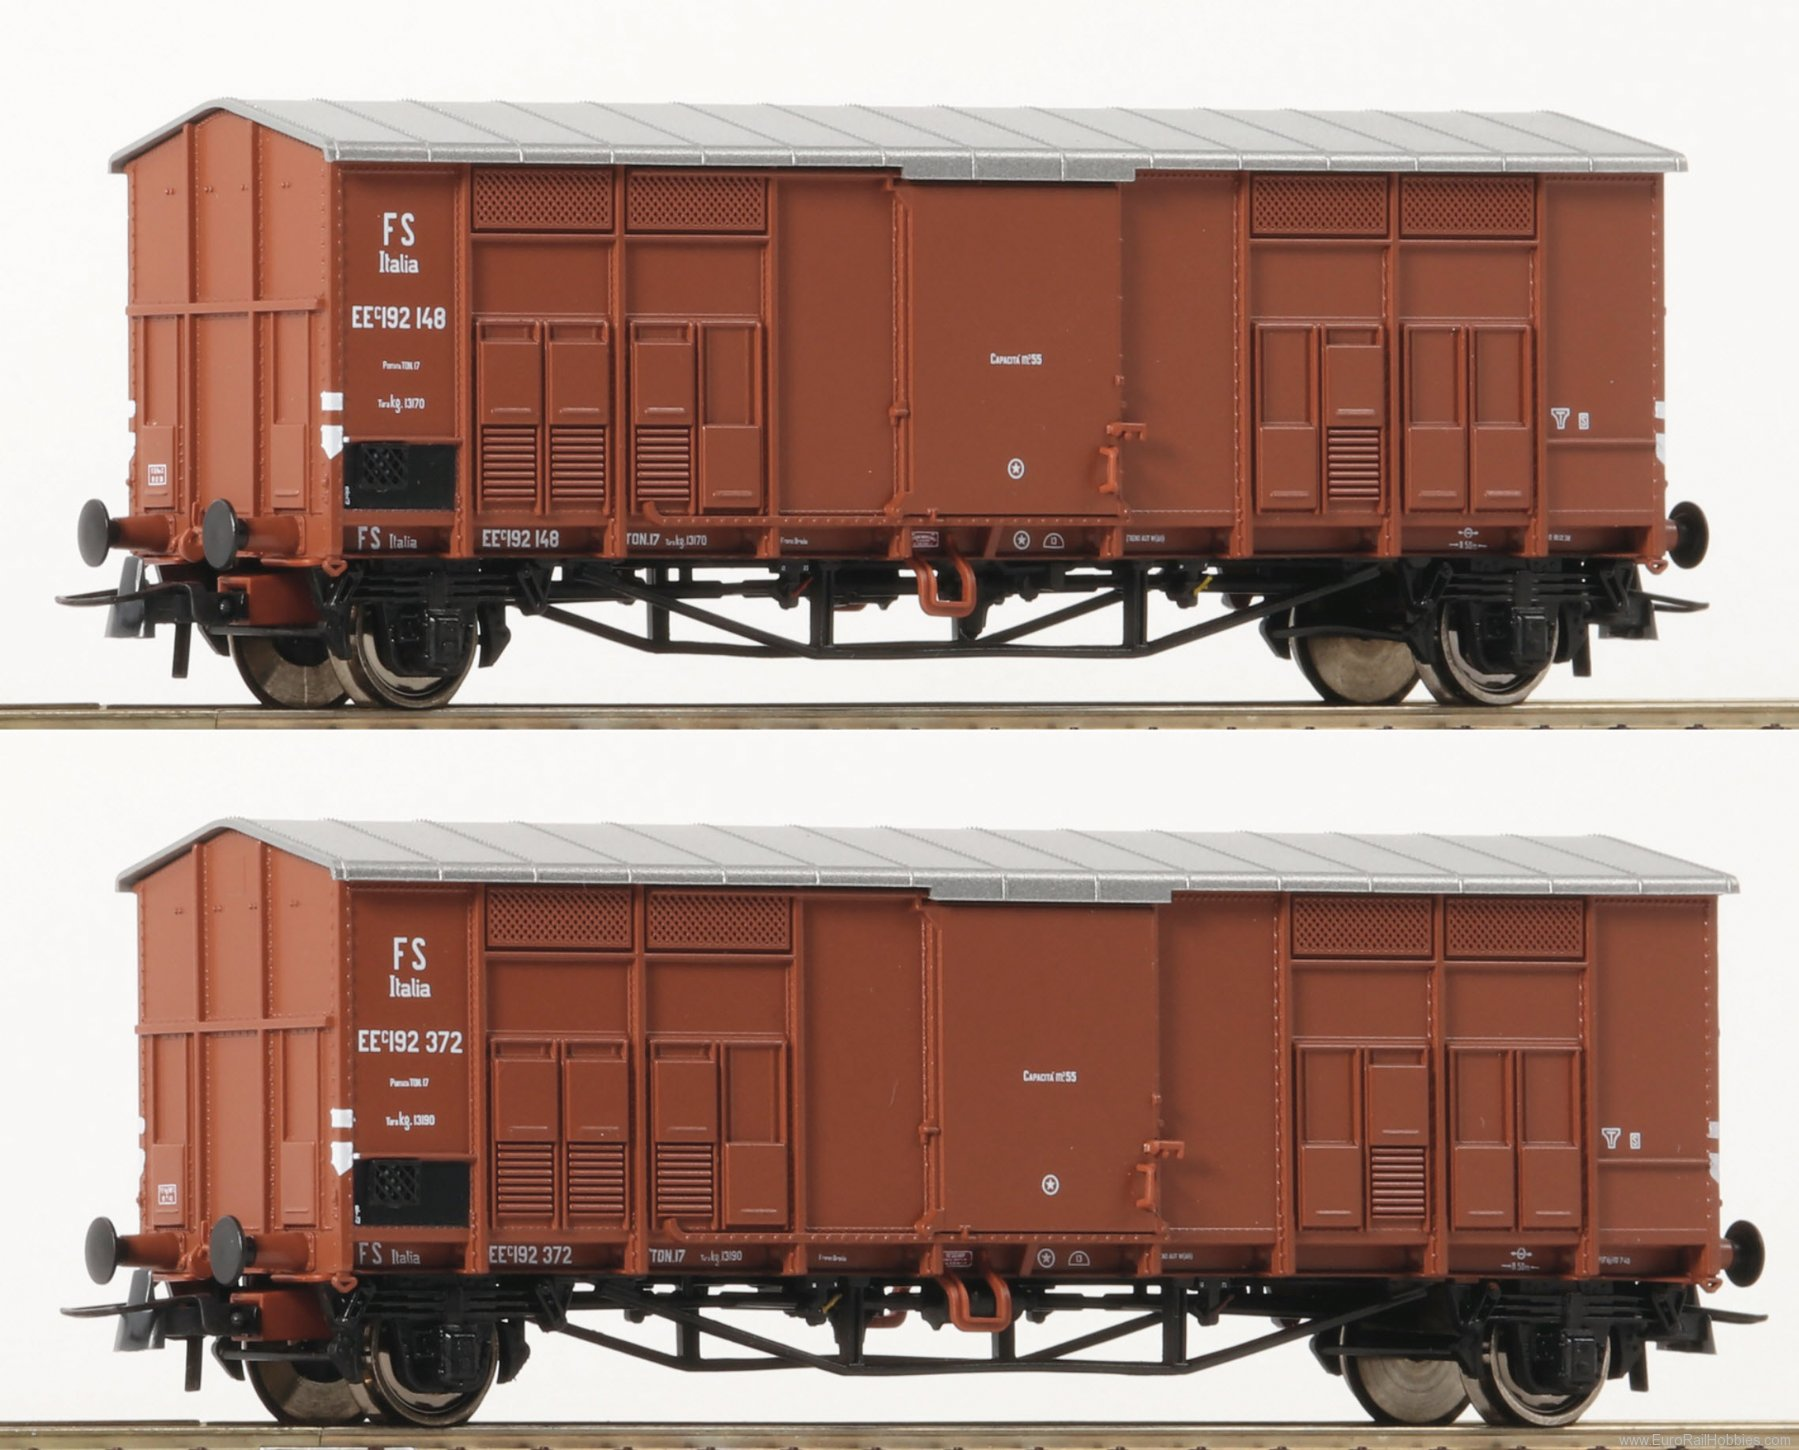 Roco 76162 Roco FS Pitched Roof Wagons, 2 Piece Set - (N